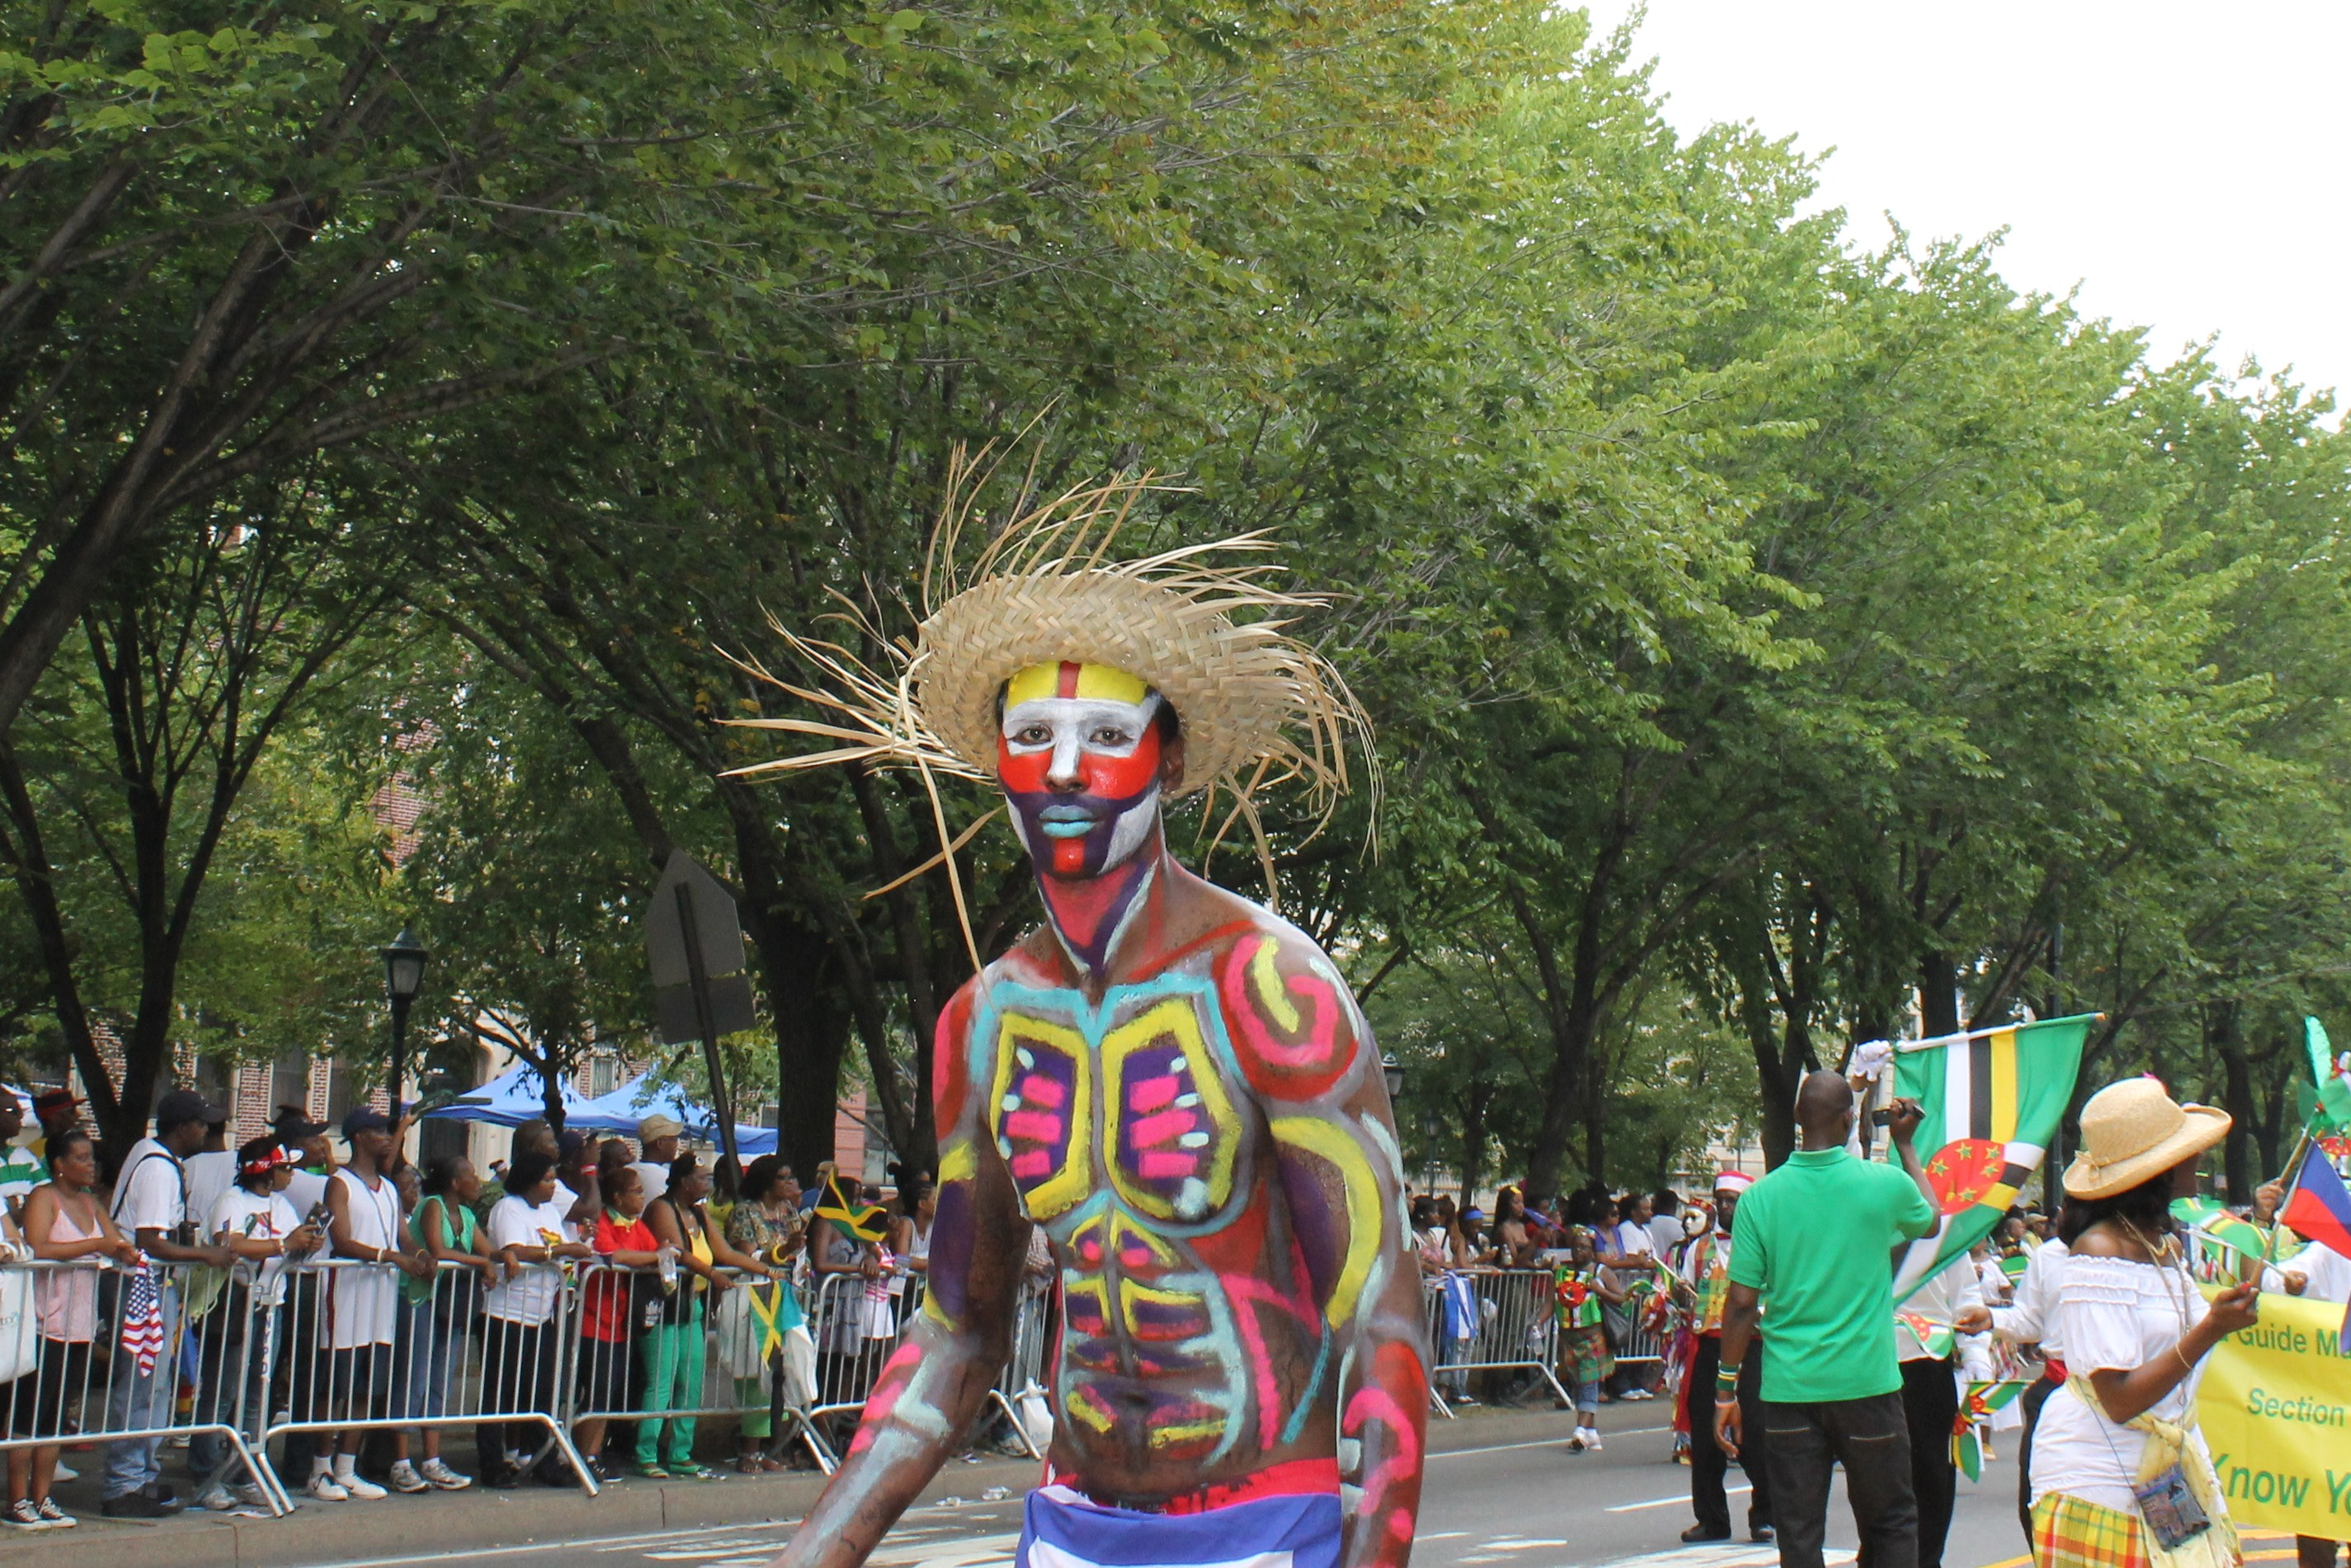 Black And White Queen Shines At The West Indian Day Parade